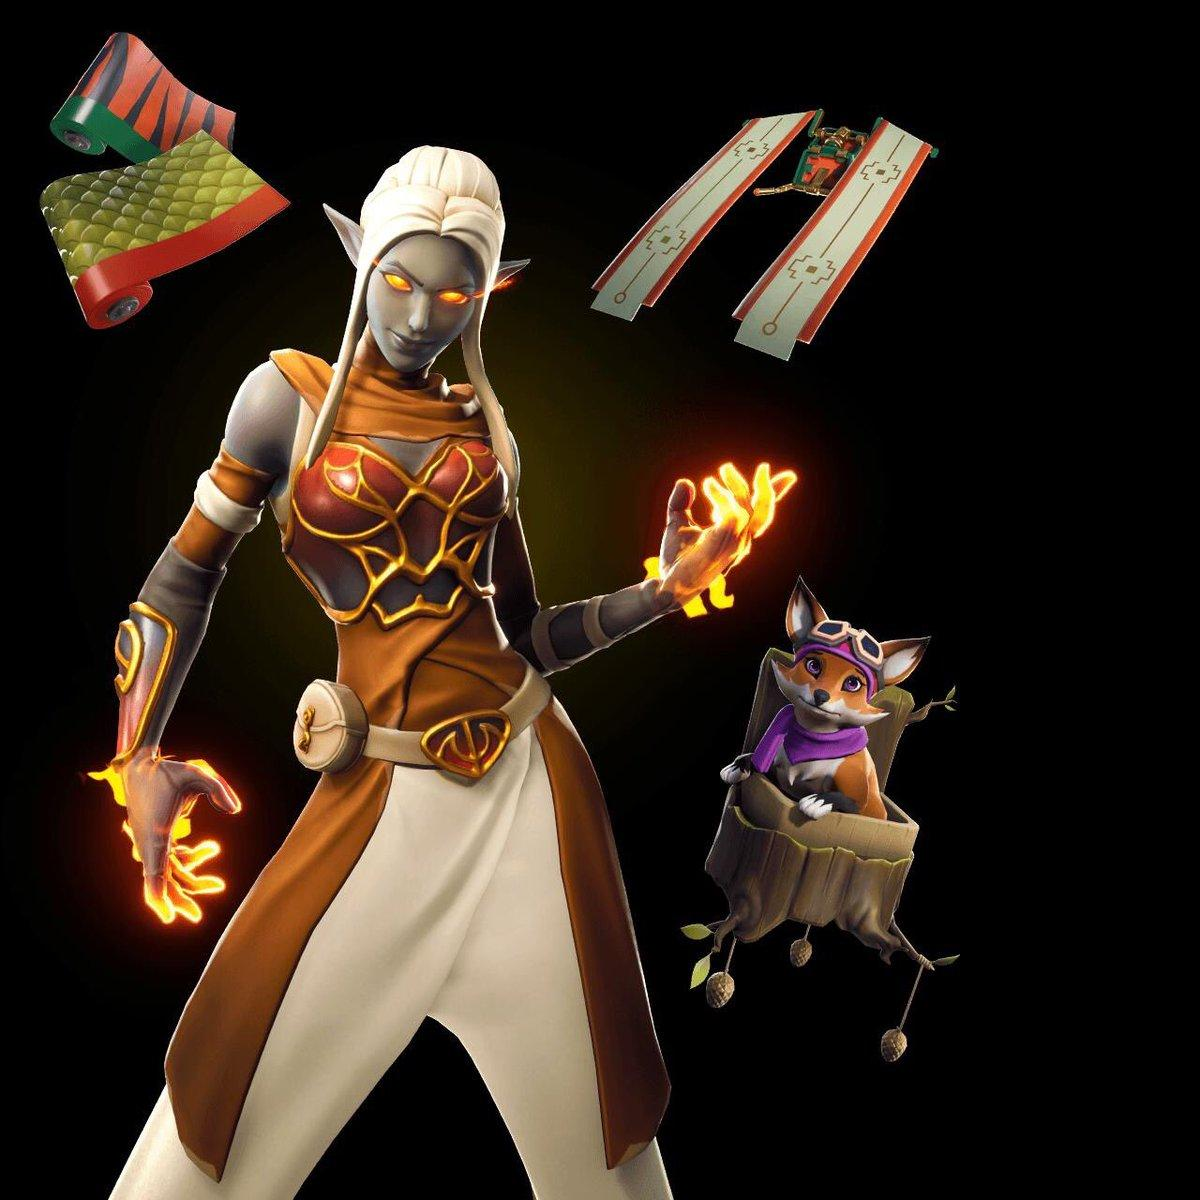 Fortnite Ember Skin Wallpaper | Fortnite Generator No Human